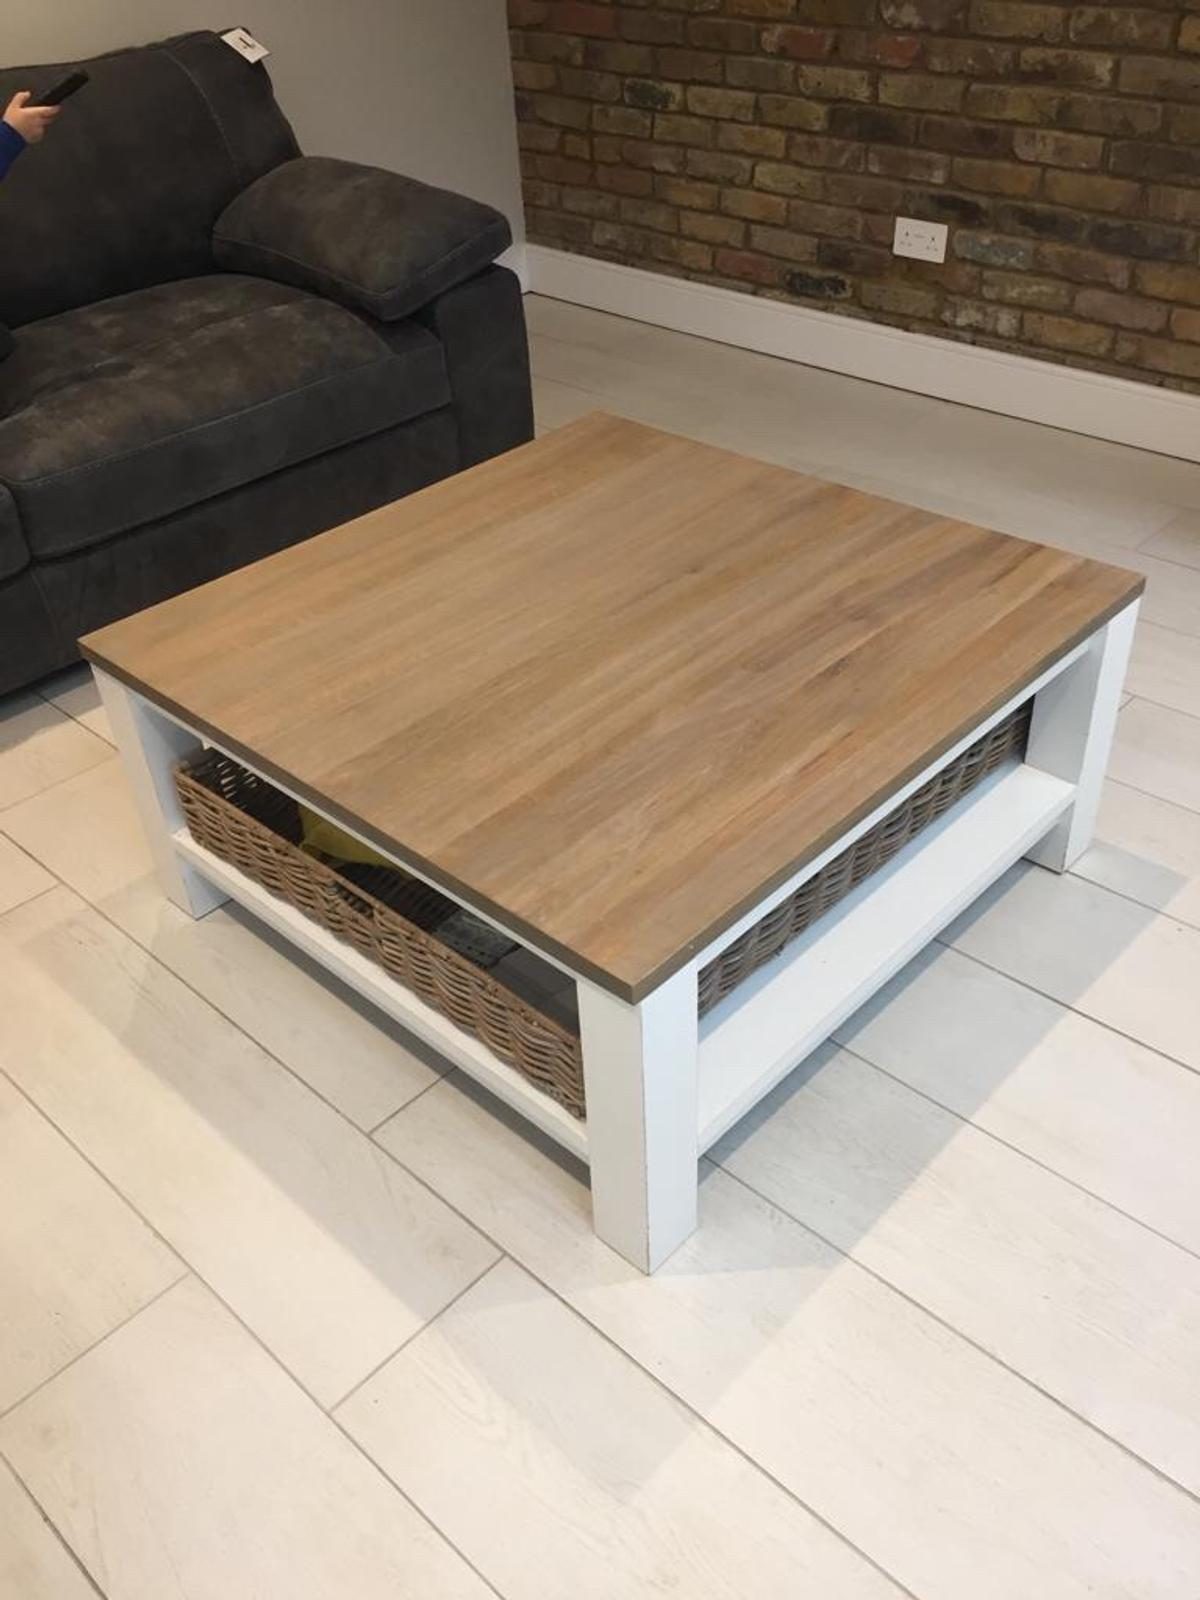 - Wooden Coffee Table In London Für £ 120,00 Zum Verkauf Shpock AT